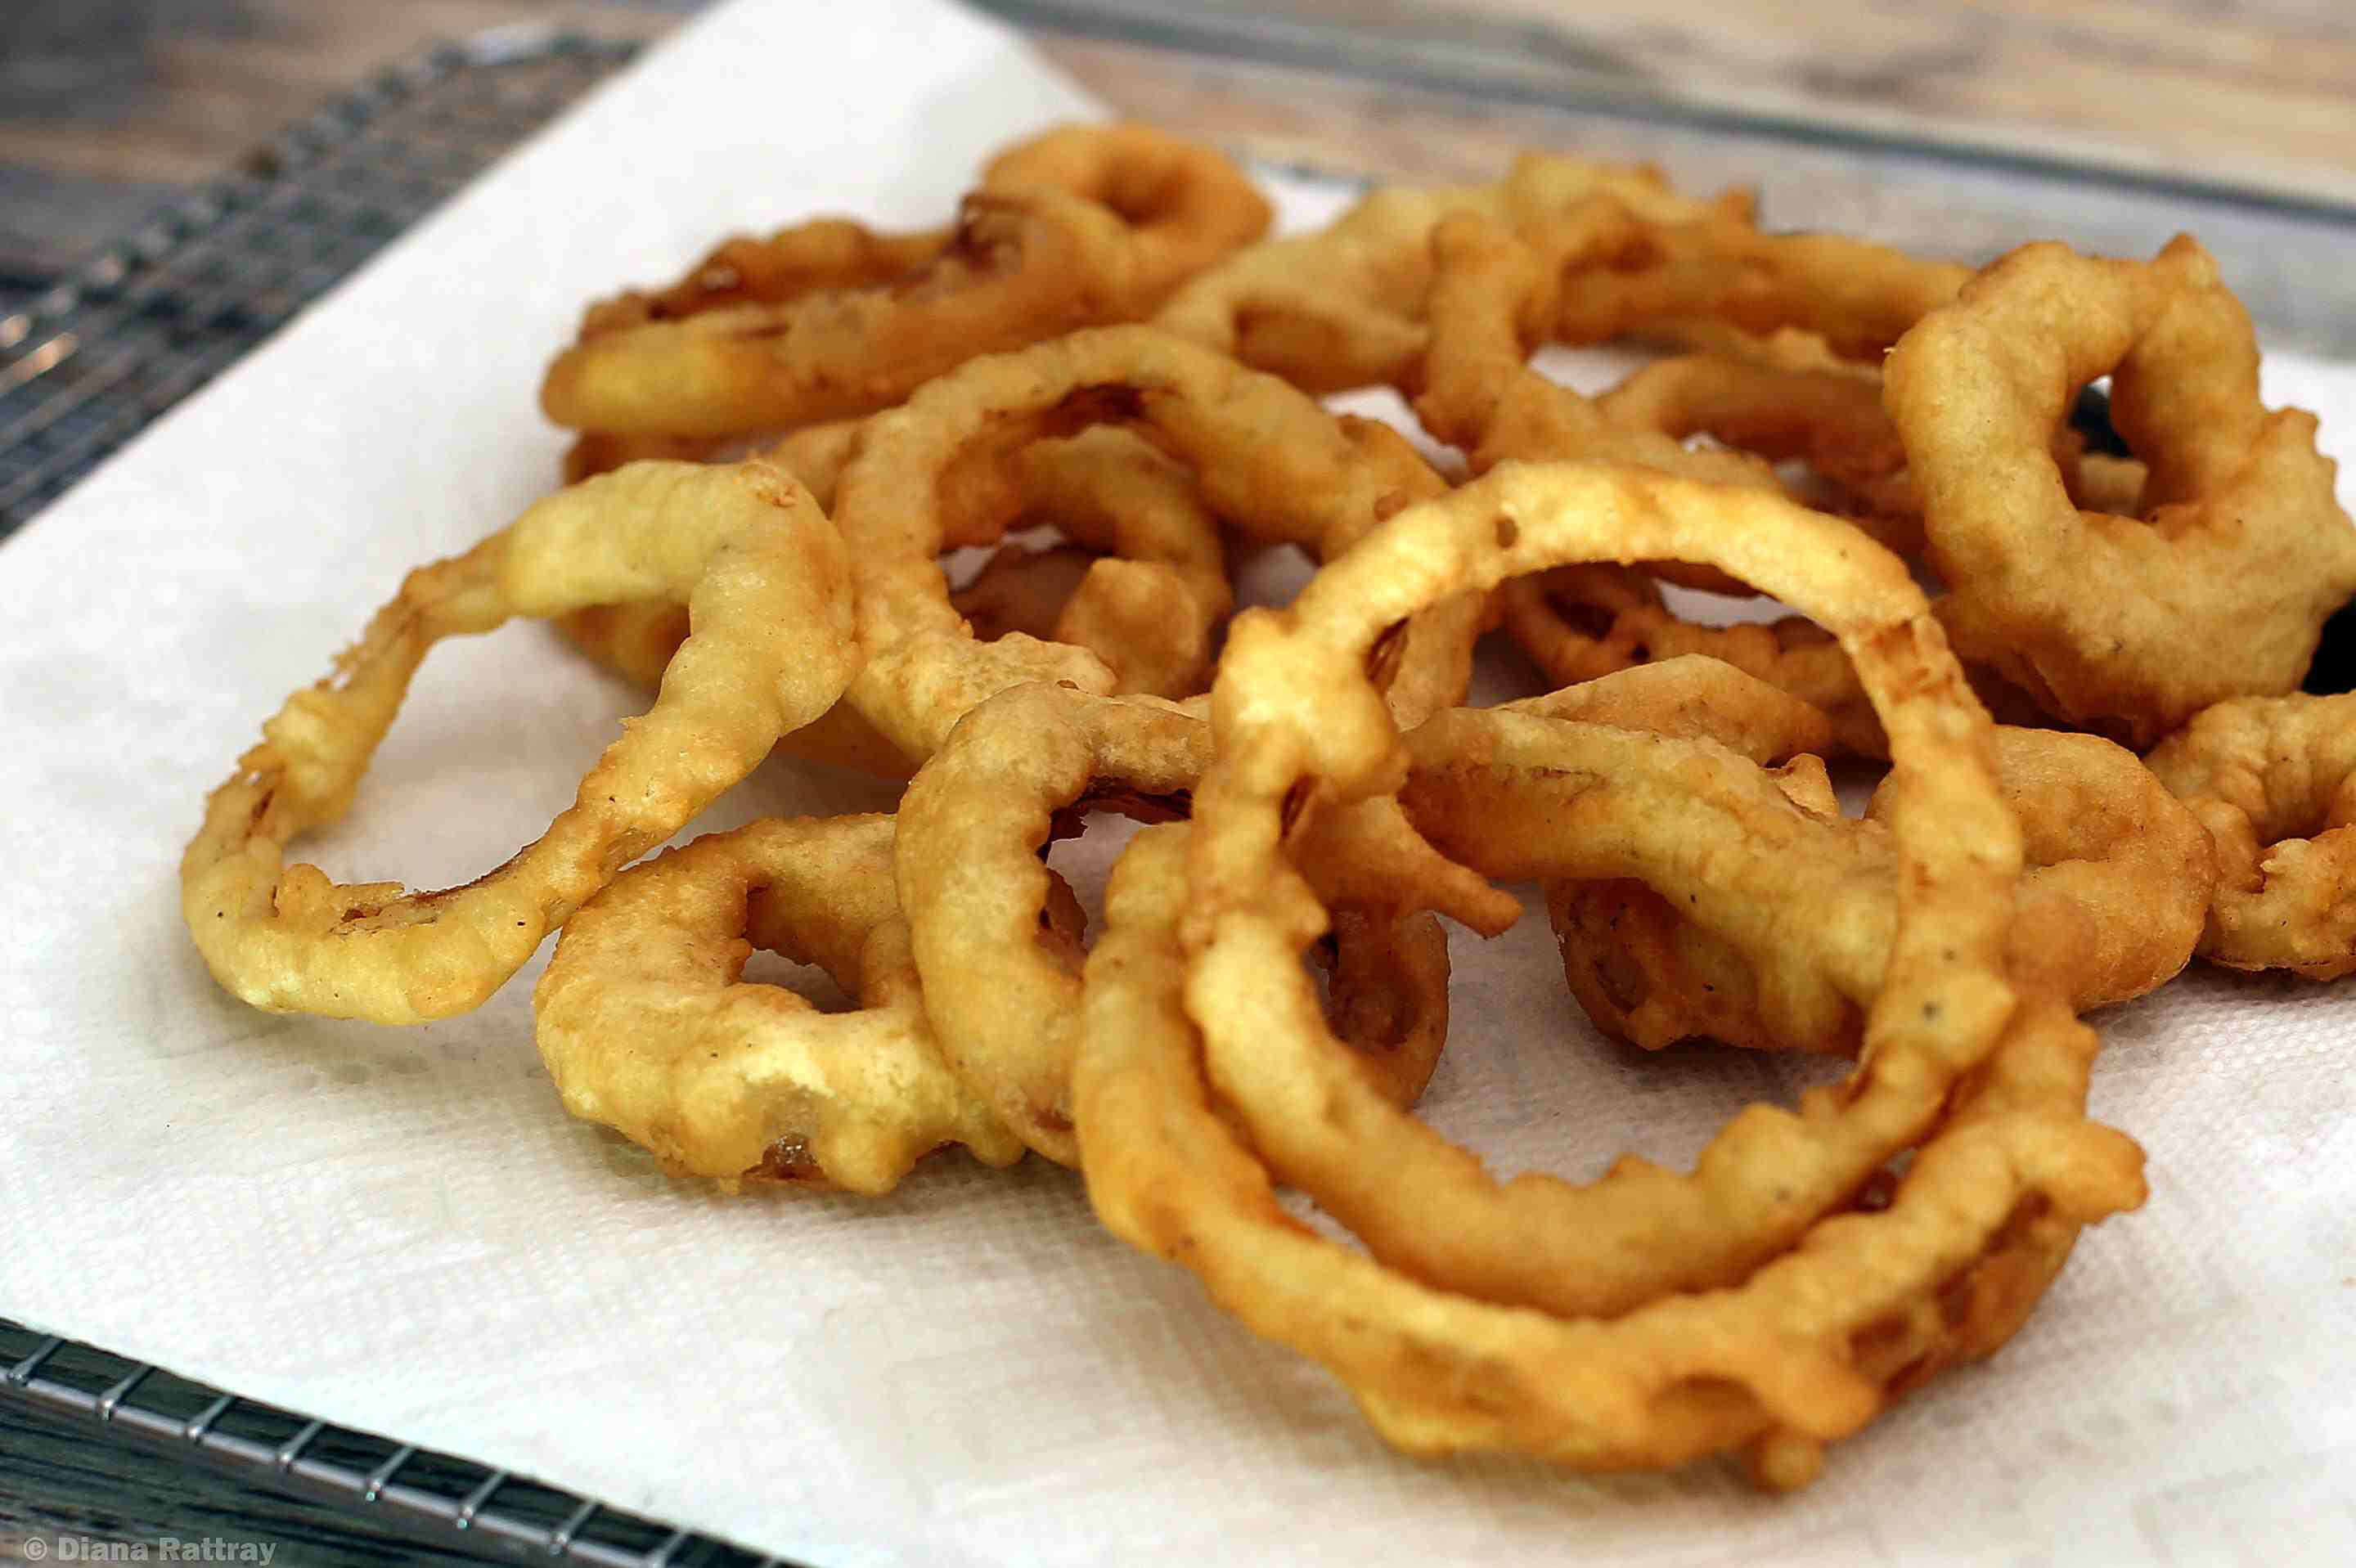 tastemade shows take onion cheetos rings